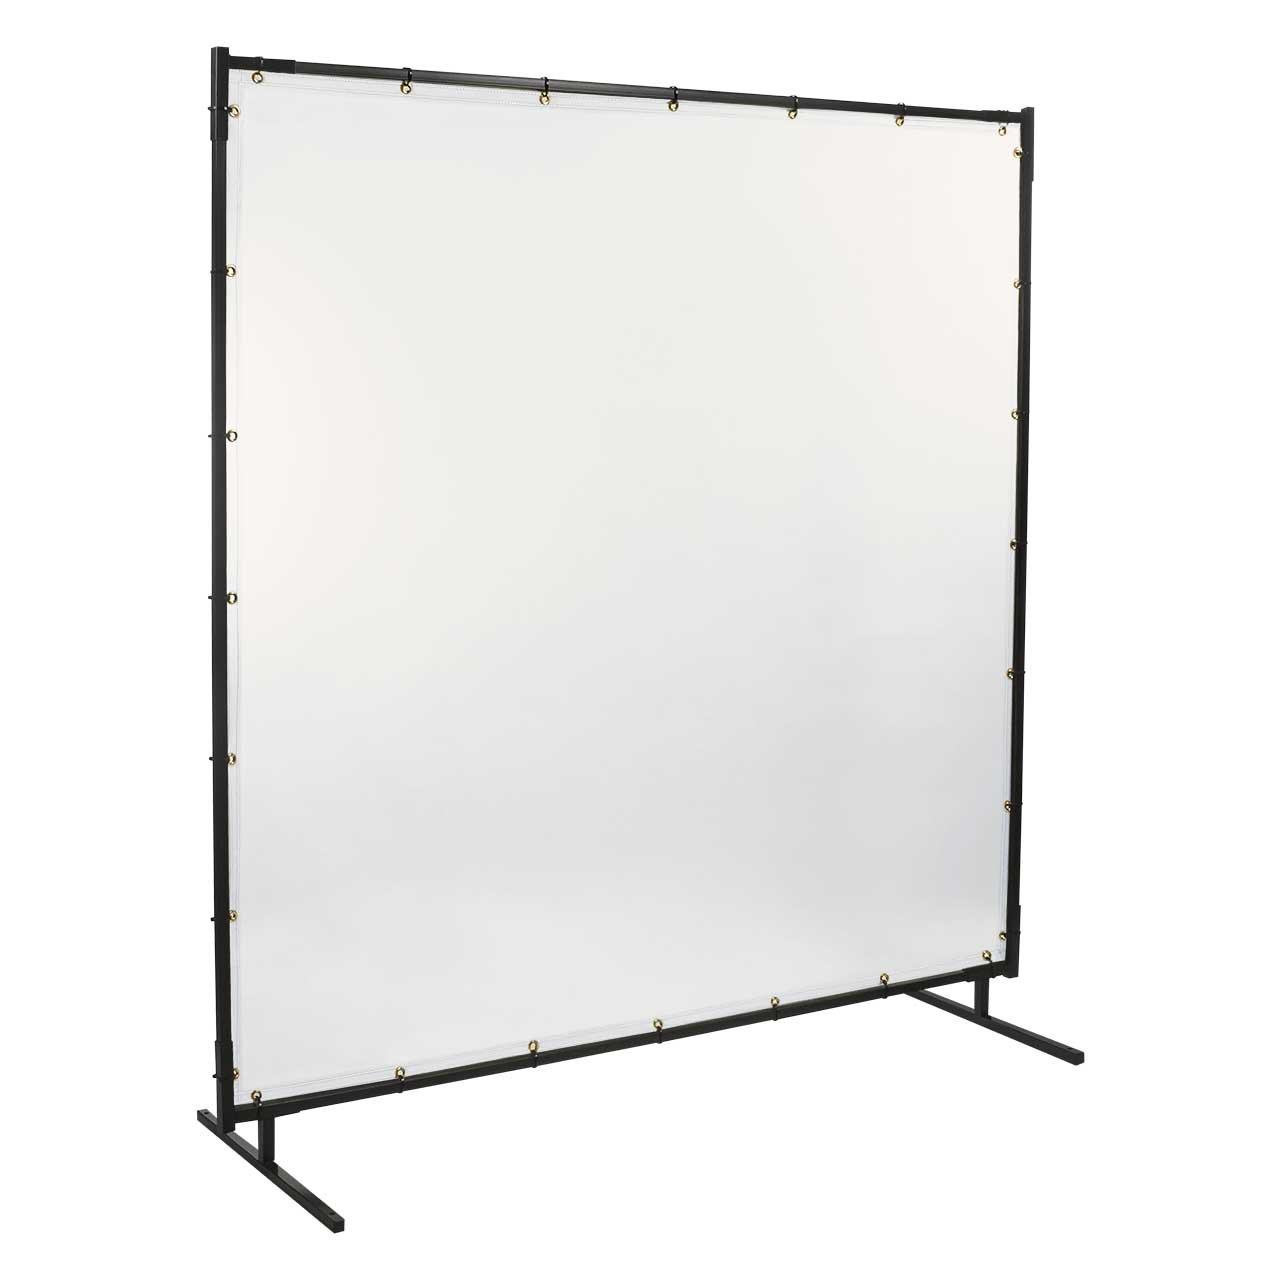 Steiner 539-6X10 Protect-O-Screen Classic Welding Screen with 16 Mil Vinyl Curtain, Clear, 6' x 10' 6' x 10'